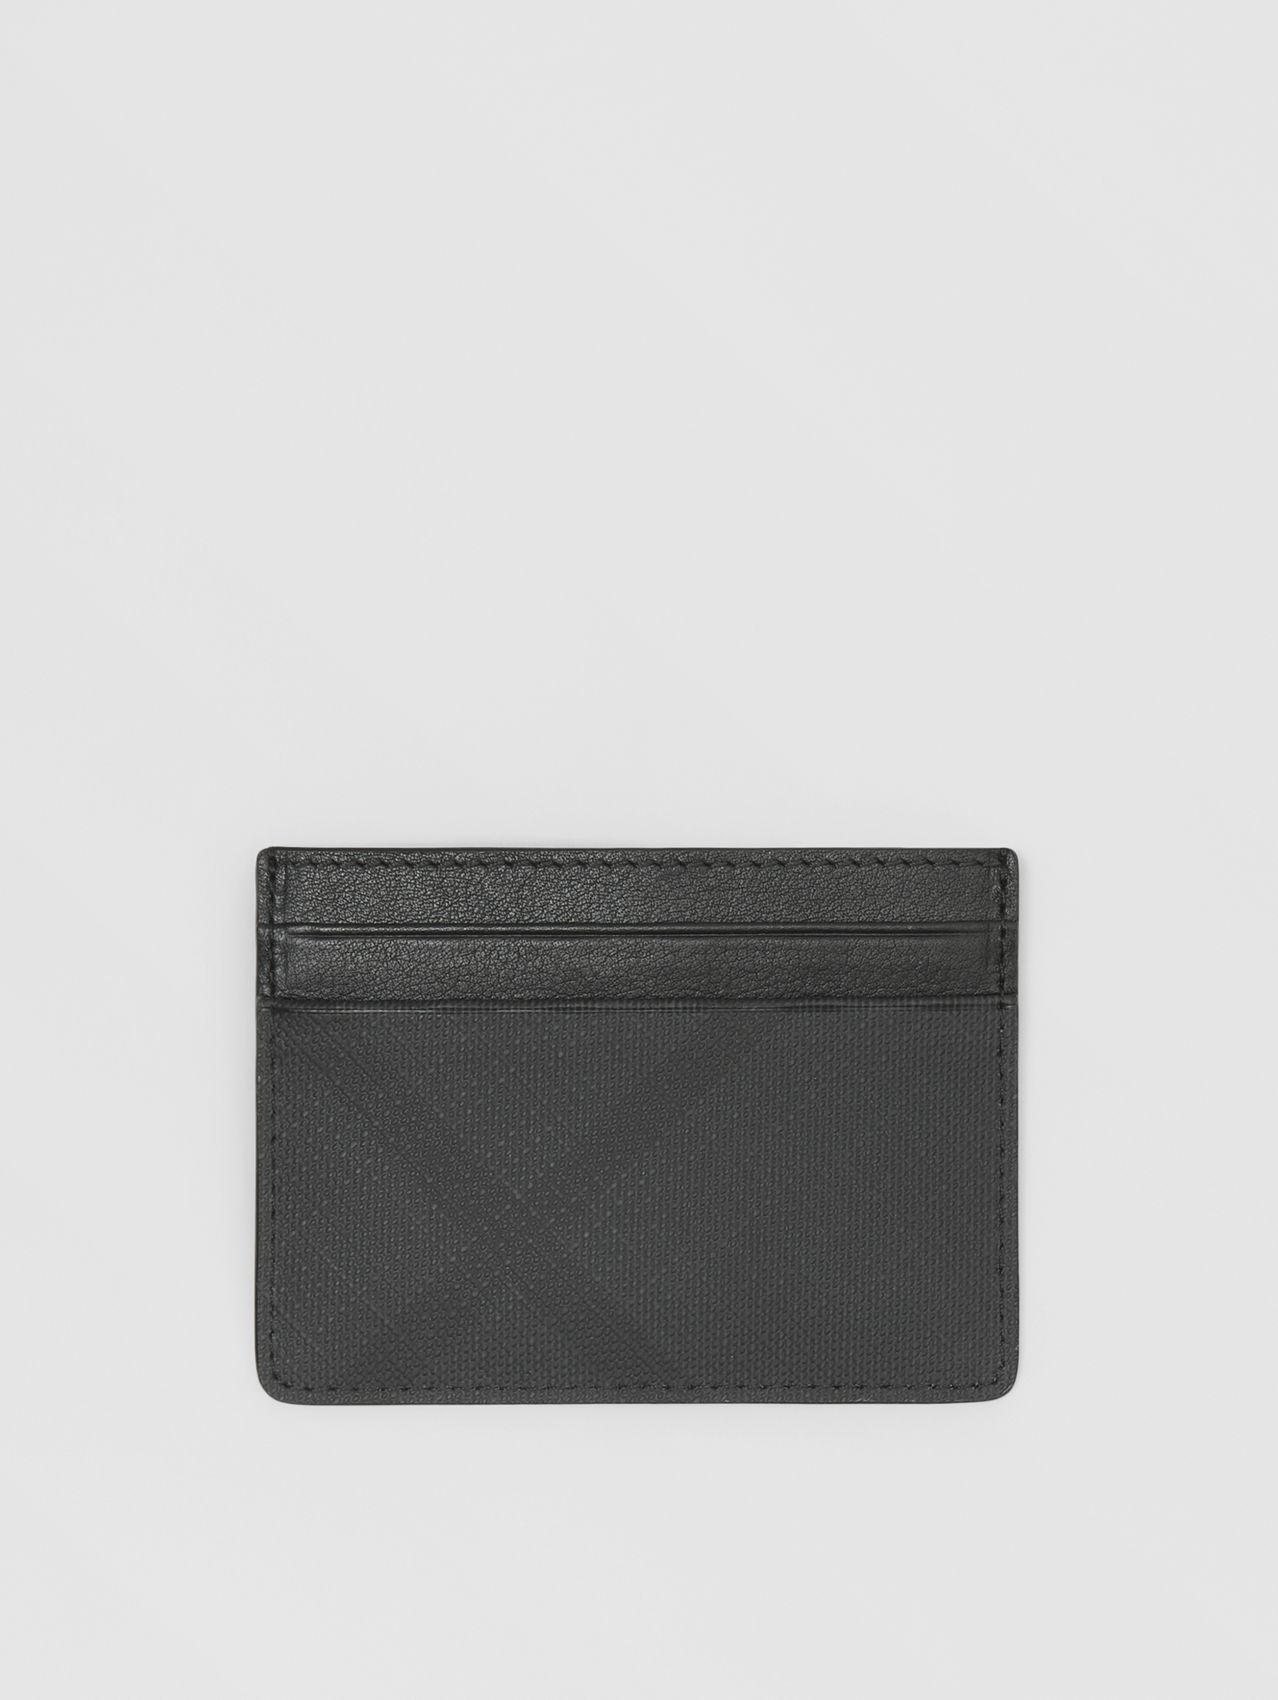 Porte-cartes en tissu London check et cuir in Anthracite Sombre